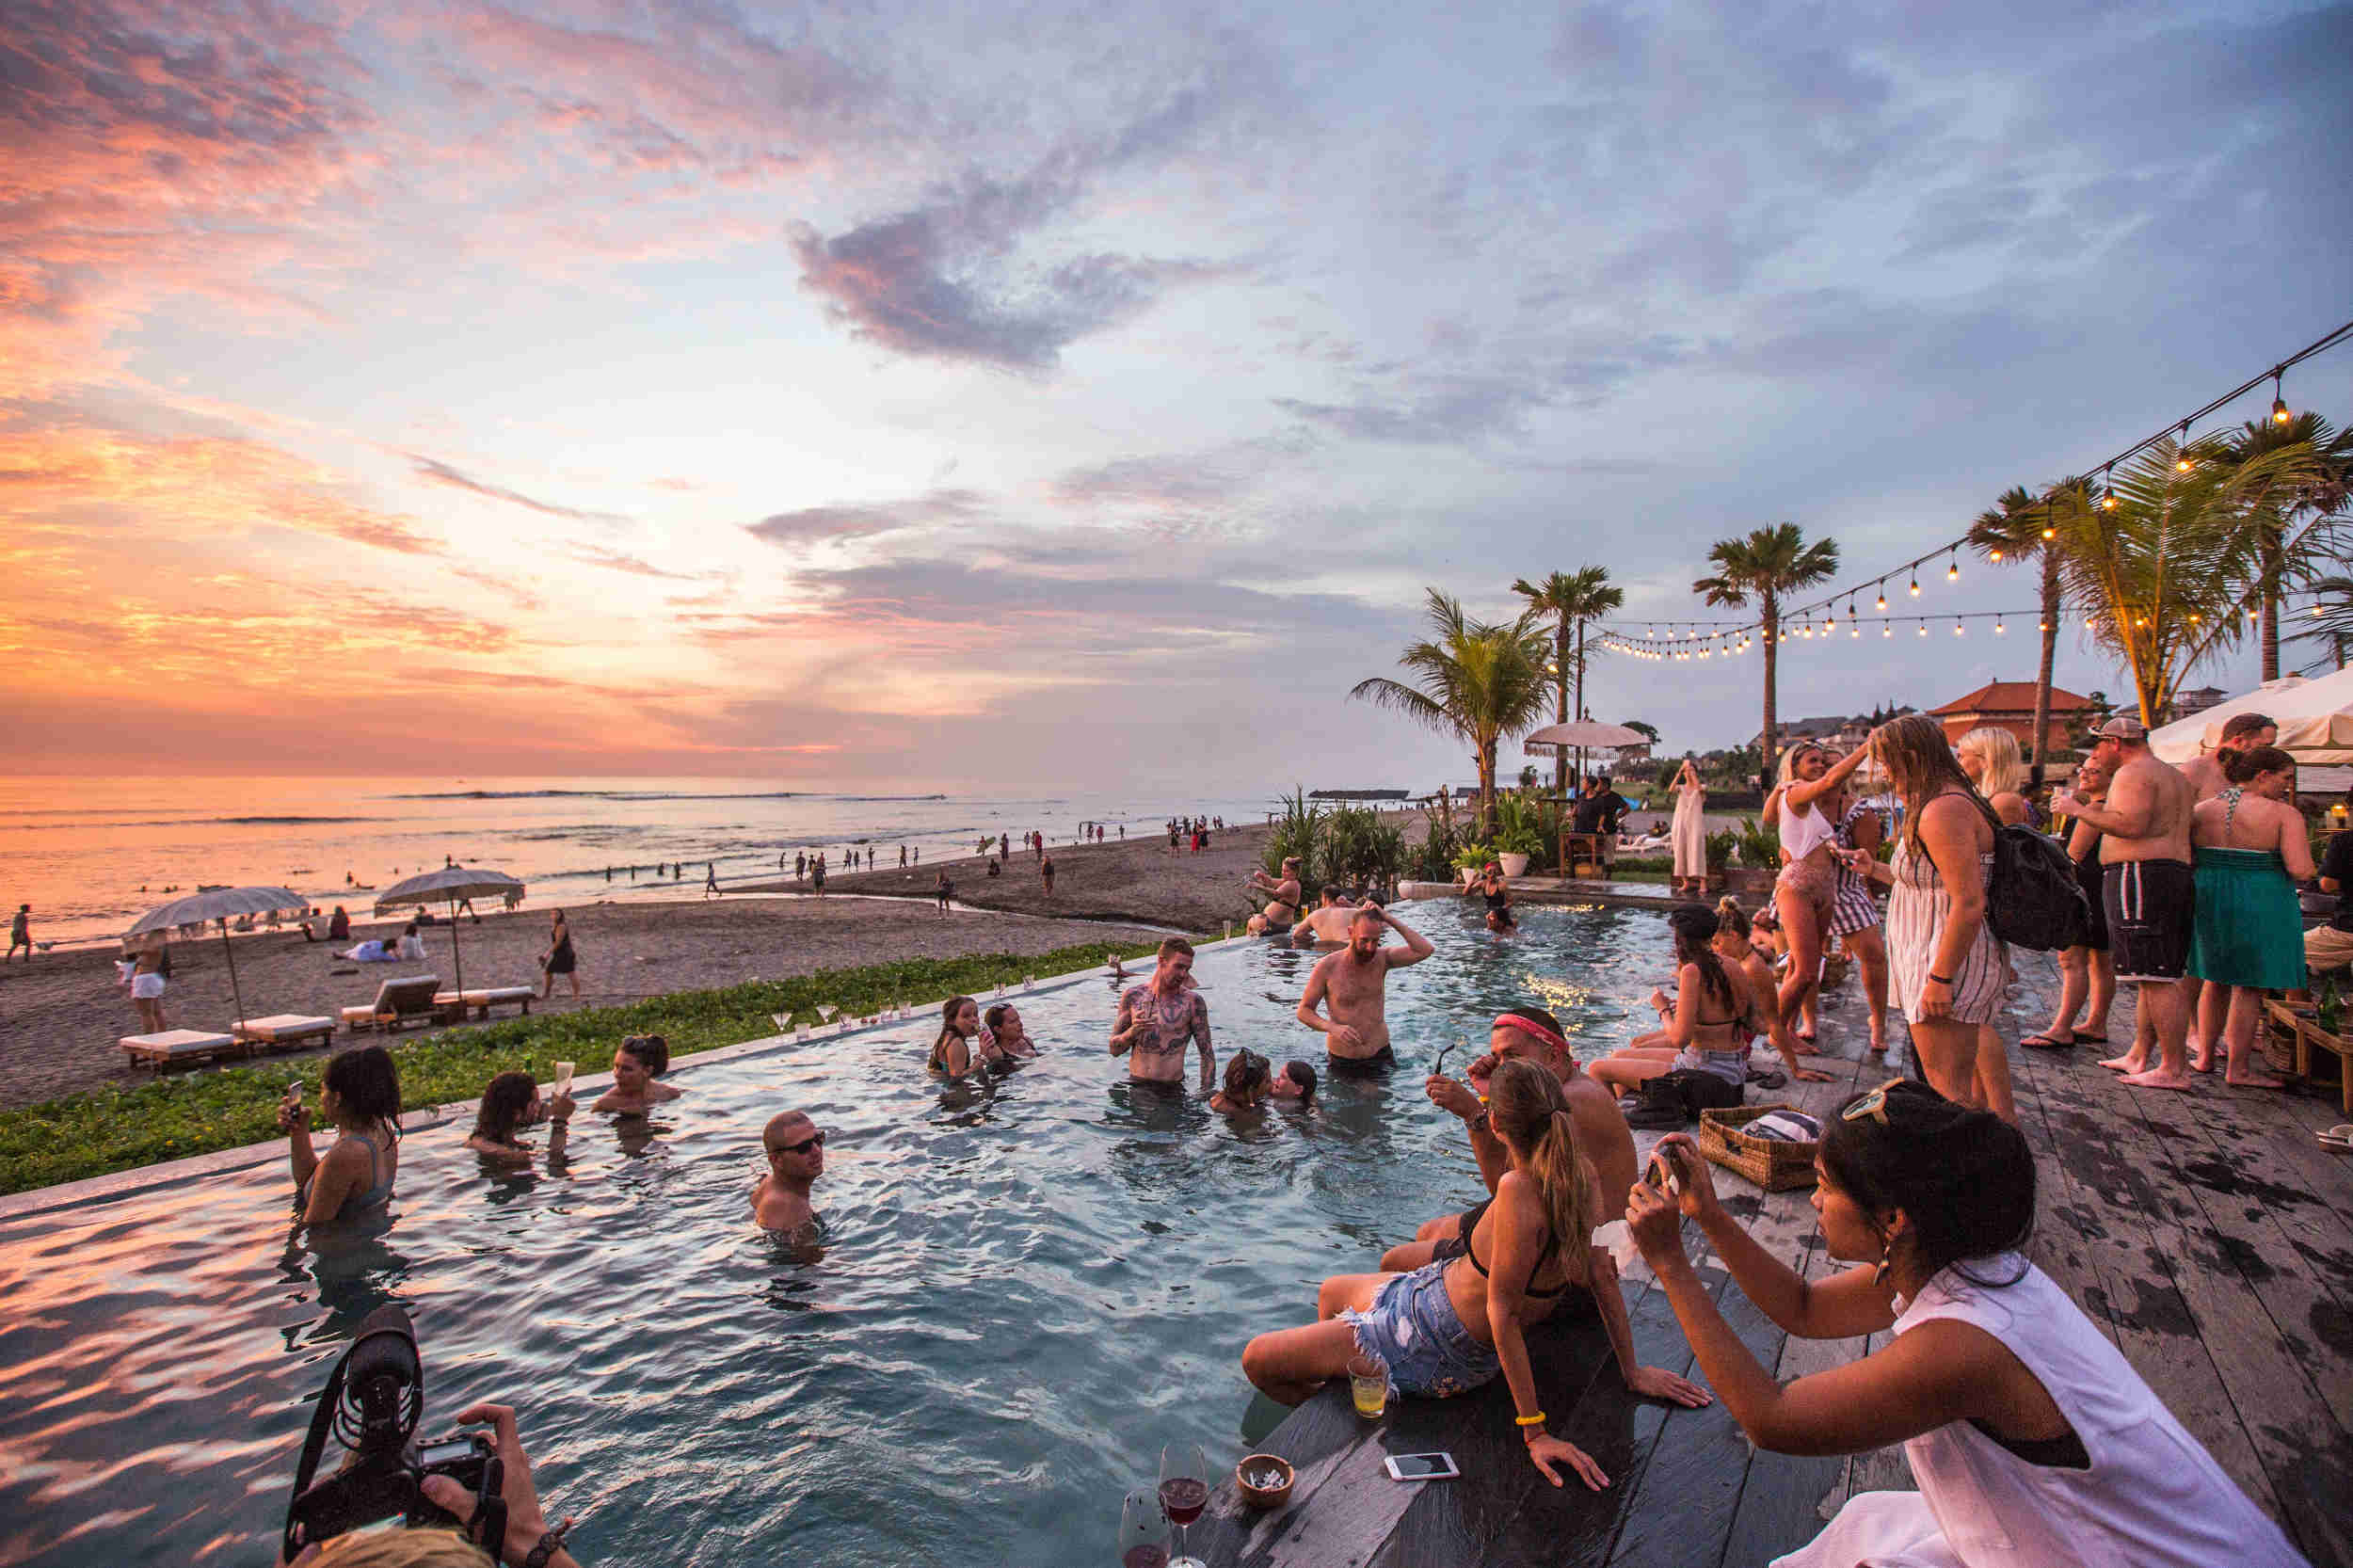 Group of guests at beach party in Canggu, Bali